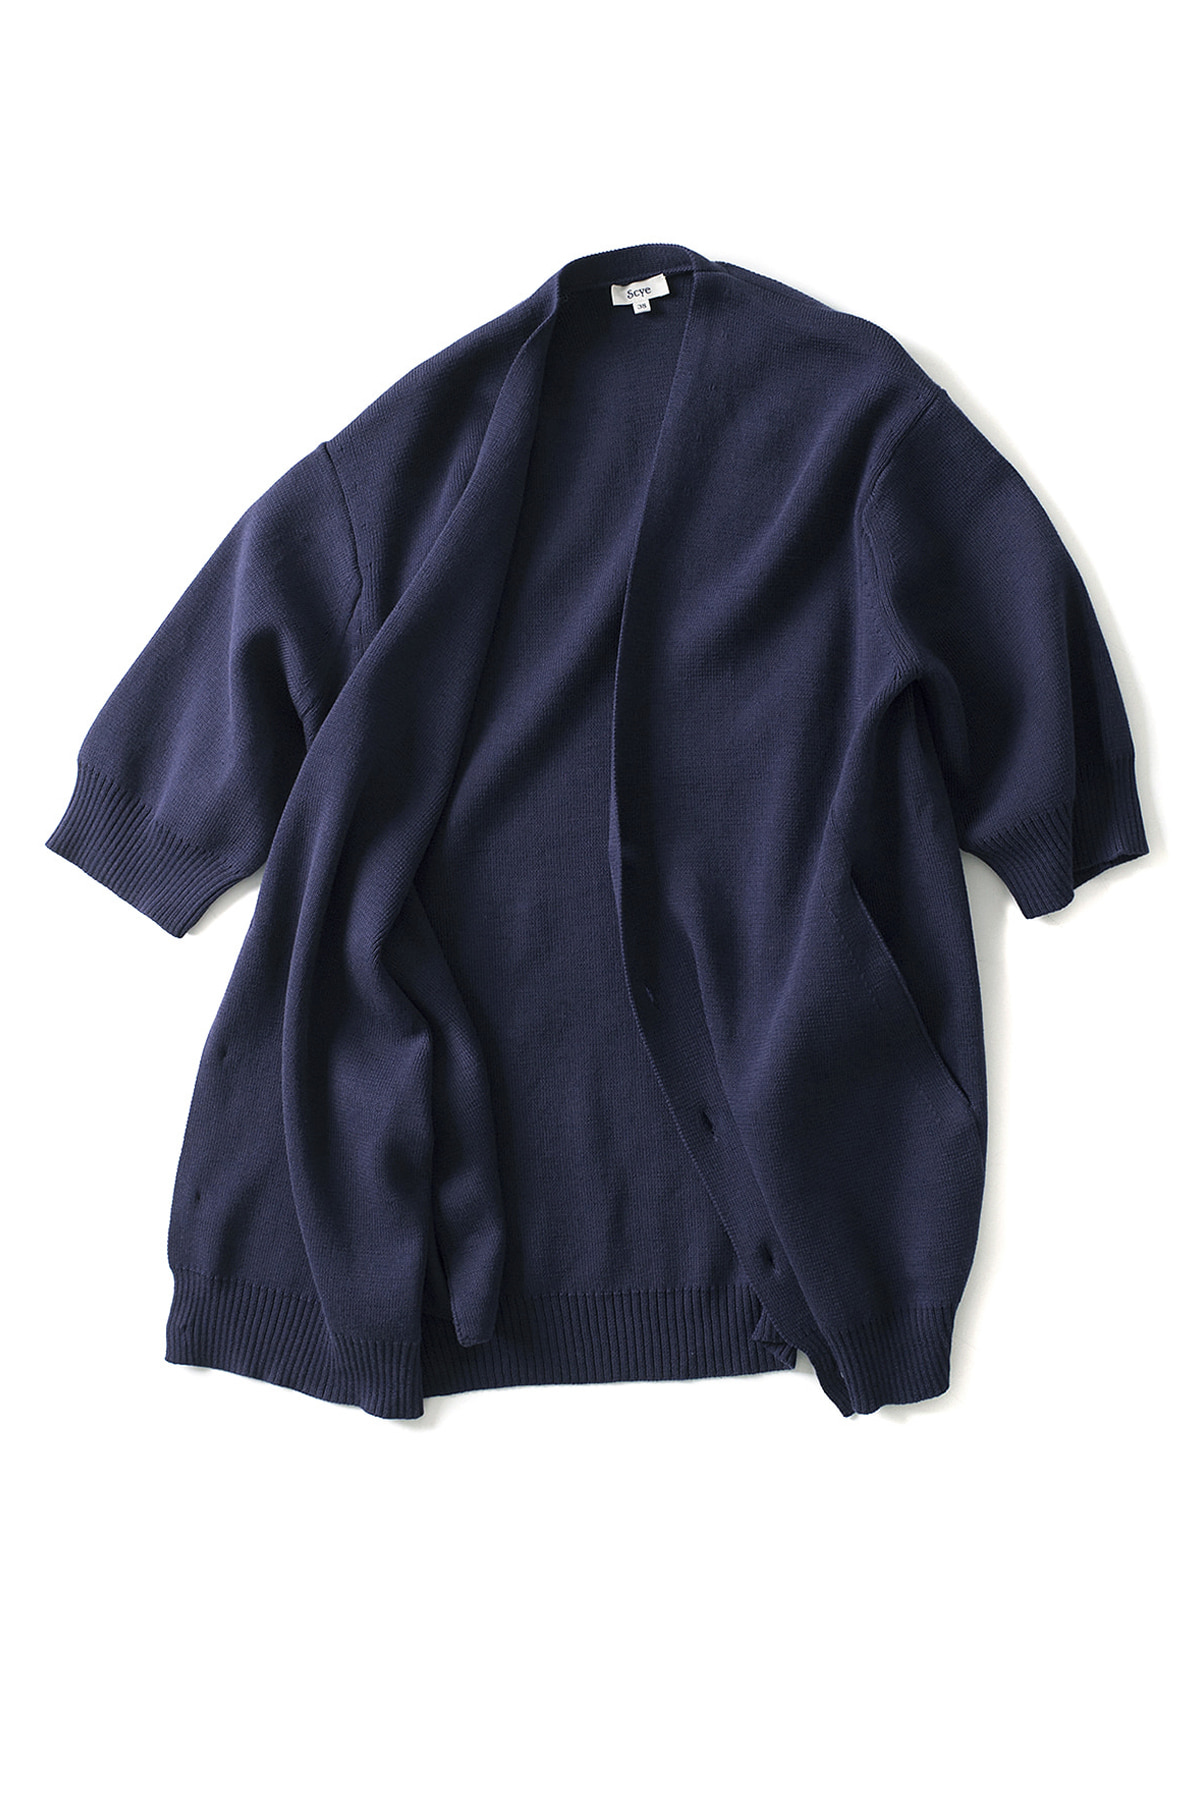 Scye : Cotton Half Sleeve Cardigan (Navy)